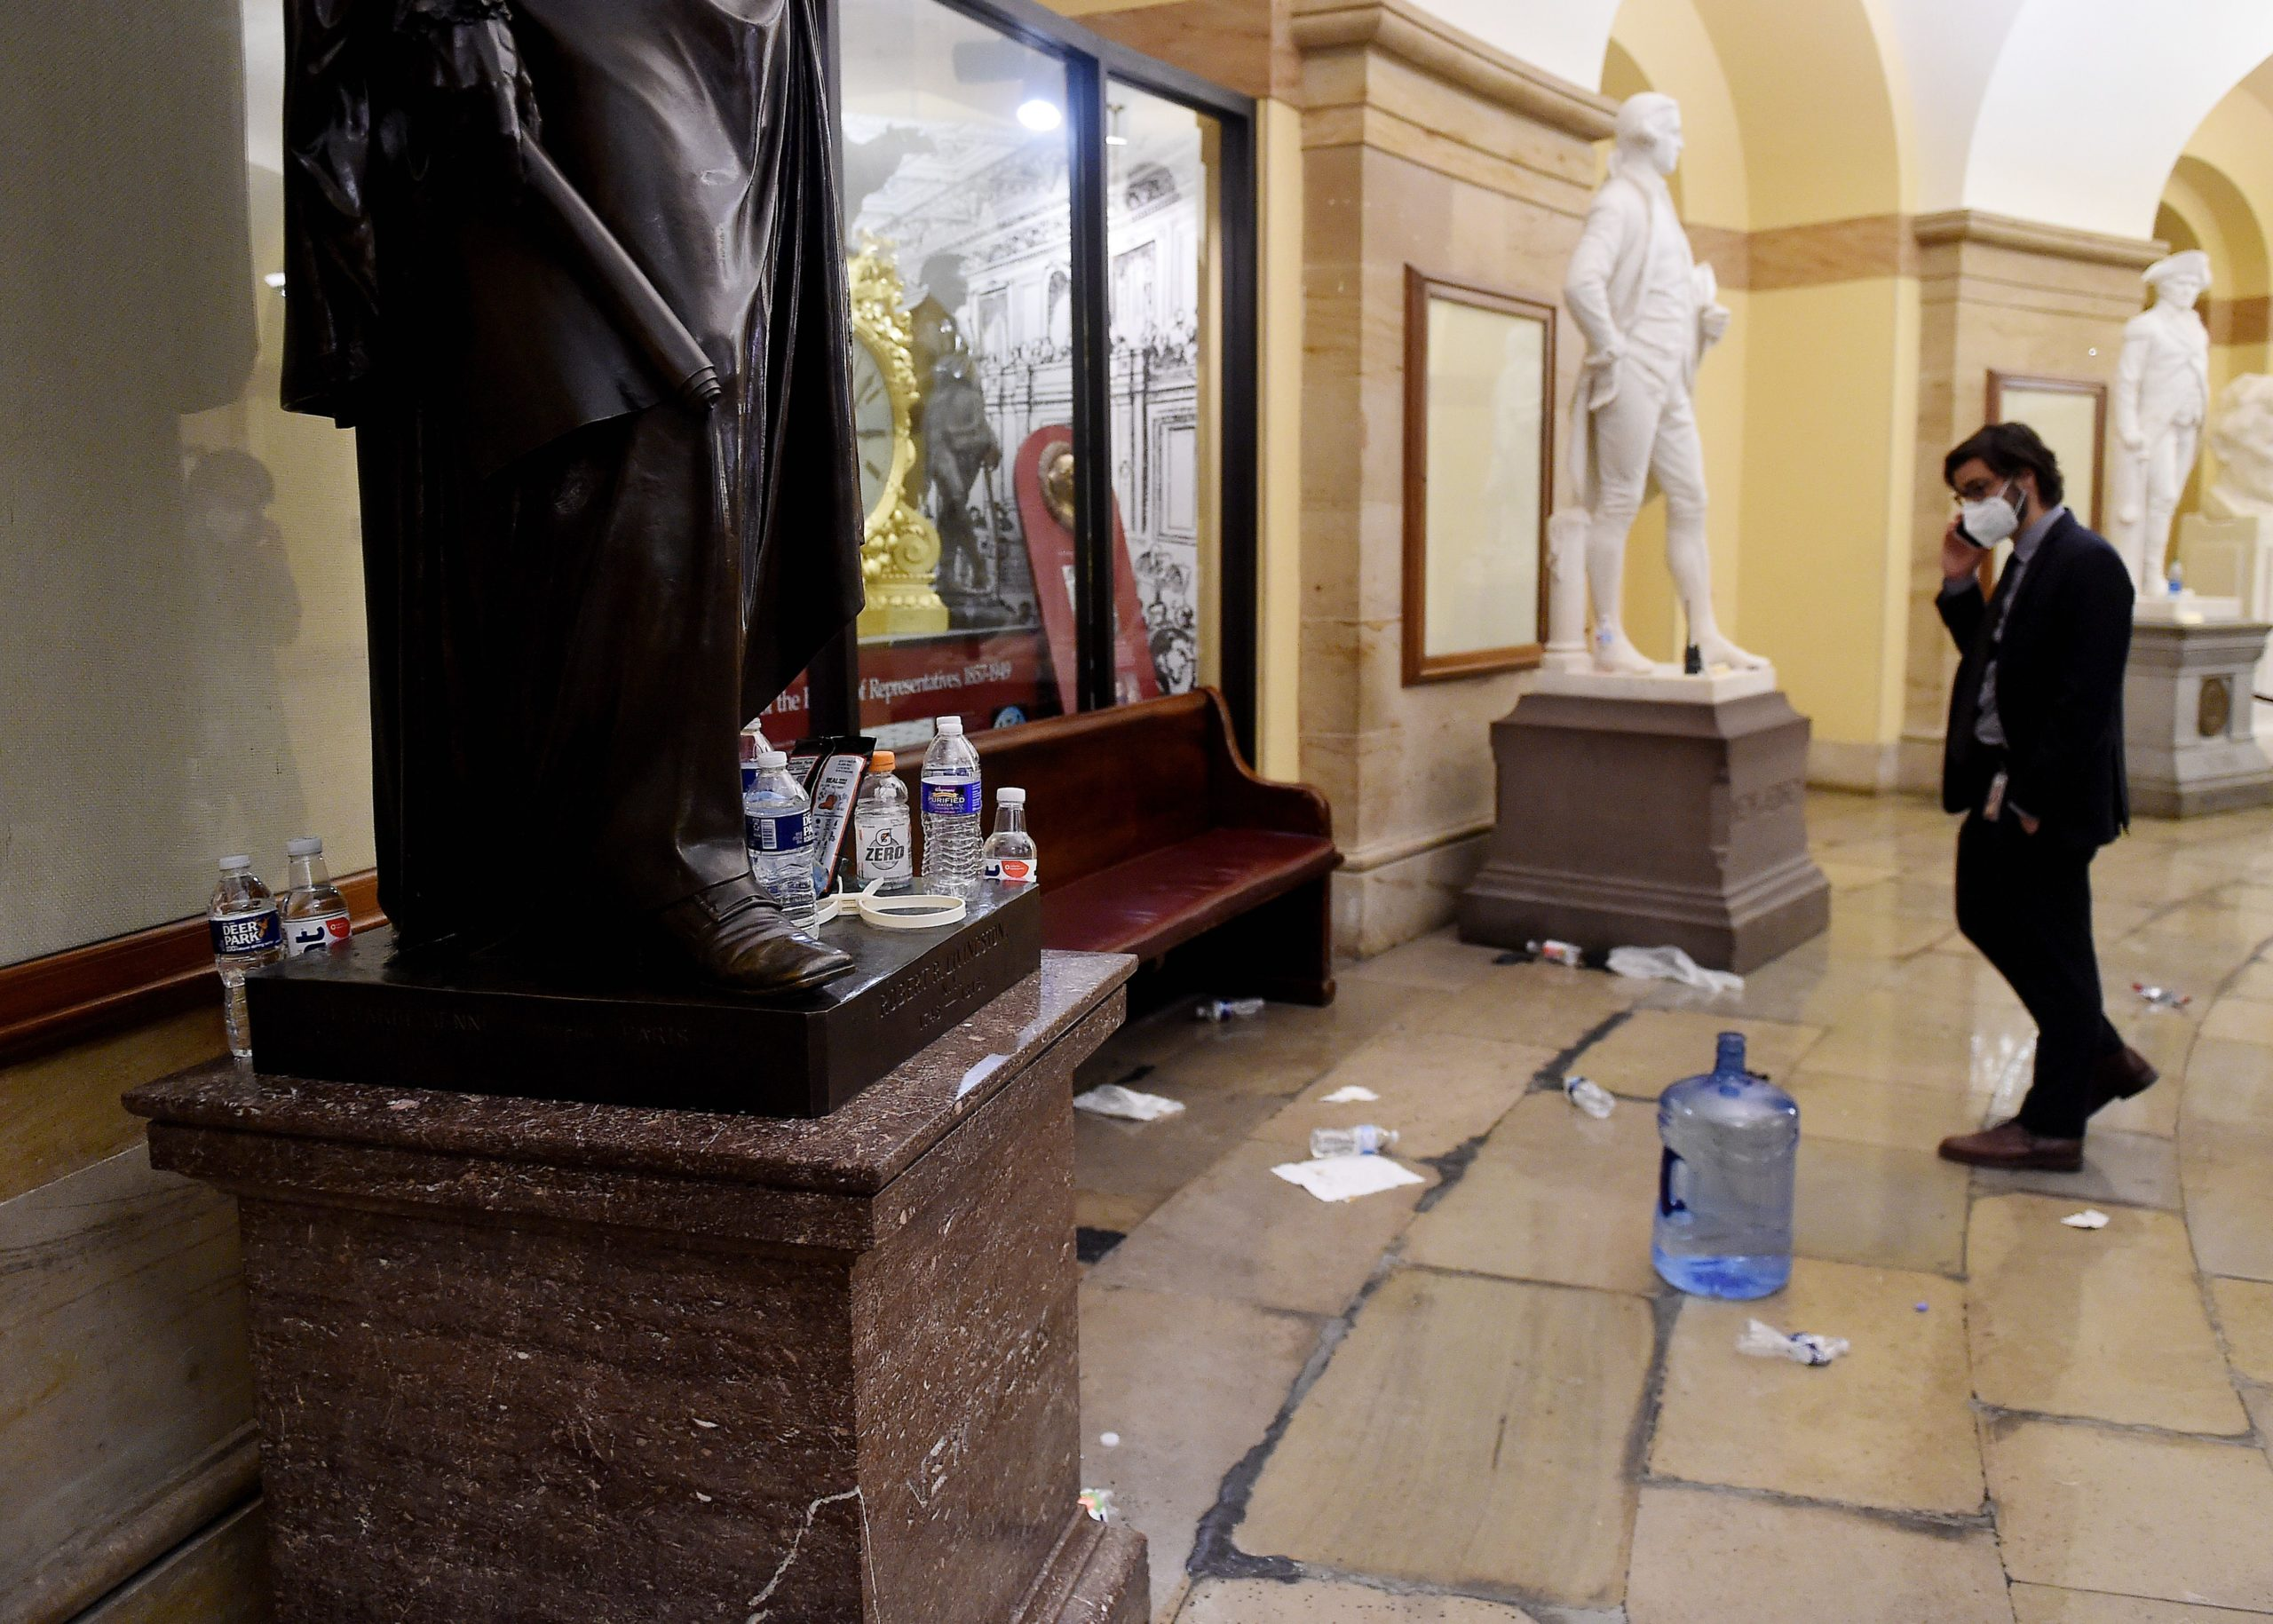 TOPSHOT - Damage is seen inside the US Capitol building early on January 7, 2021 in Washington, DC, after supporters of US President Donald Trump breeched security and entered the building during a session of Congress. - Donald Trump's supporters stormed a session of Congress held today, January 6, to certify Joe Biden's election win, triggering unprecedented chaos and violence at the heart of American democracy and accusations the president was attempting a coup. (Photo by Olivier DOULIERY / AFP) (Photo by OLIVIER DOULIERY/AFP via Getty Images)